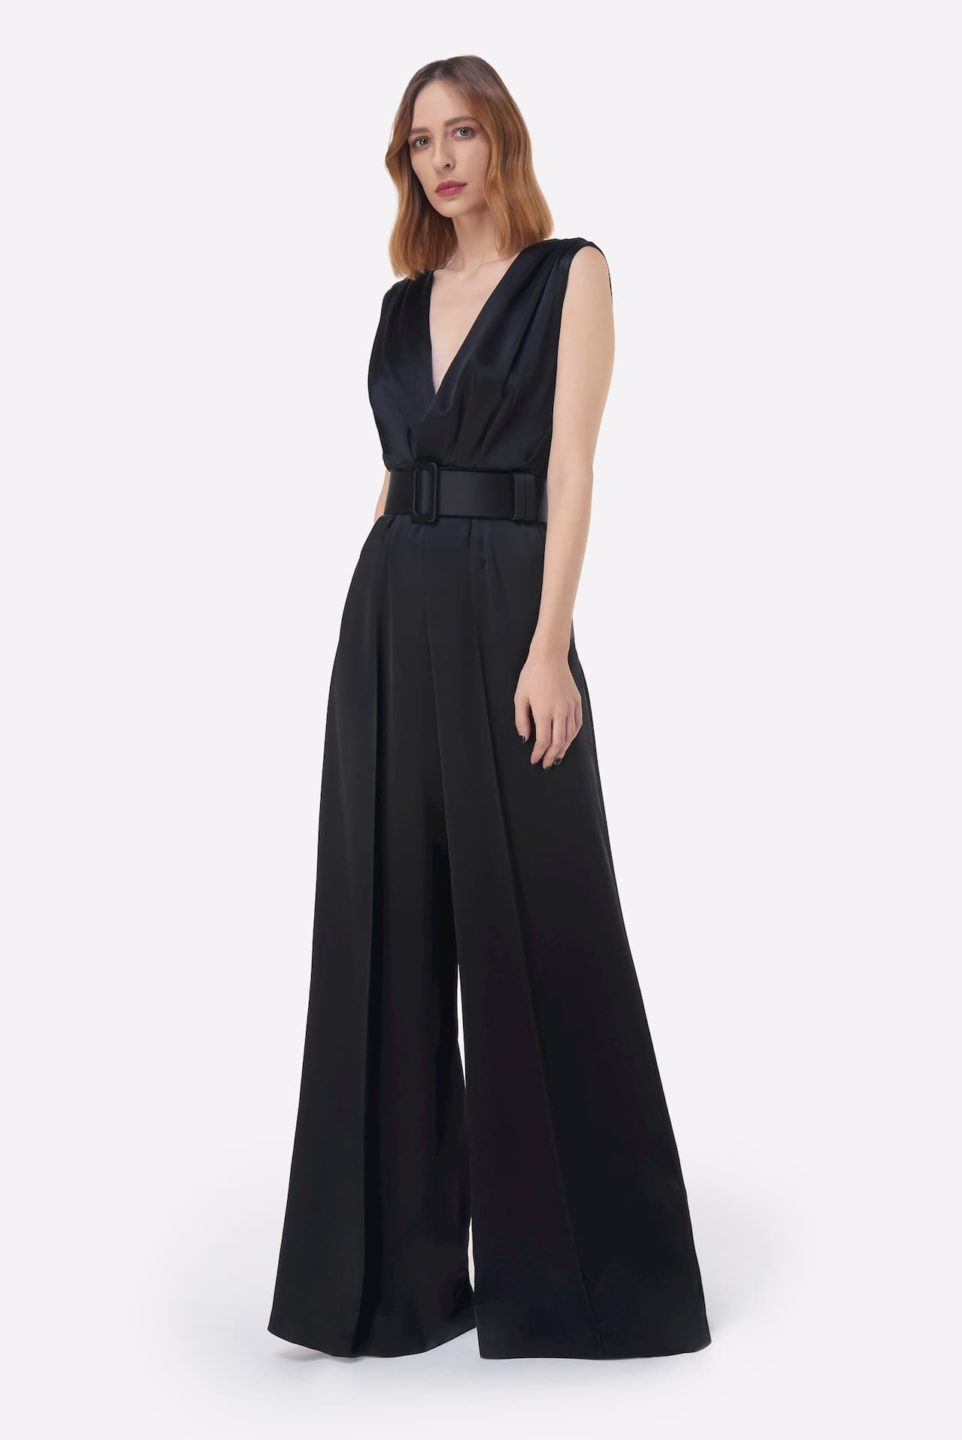 Keaton PS2138 Black Satin Colorblock Wideleg Jumpsuit with Pleated Bodice